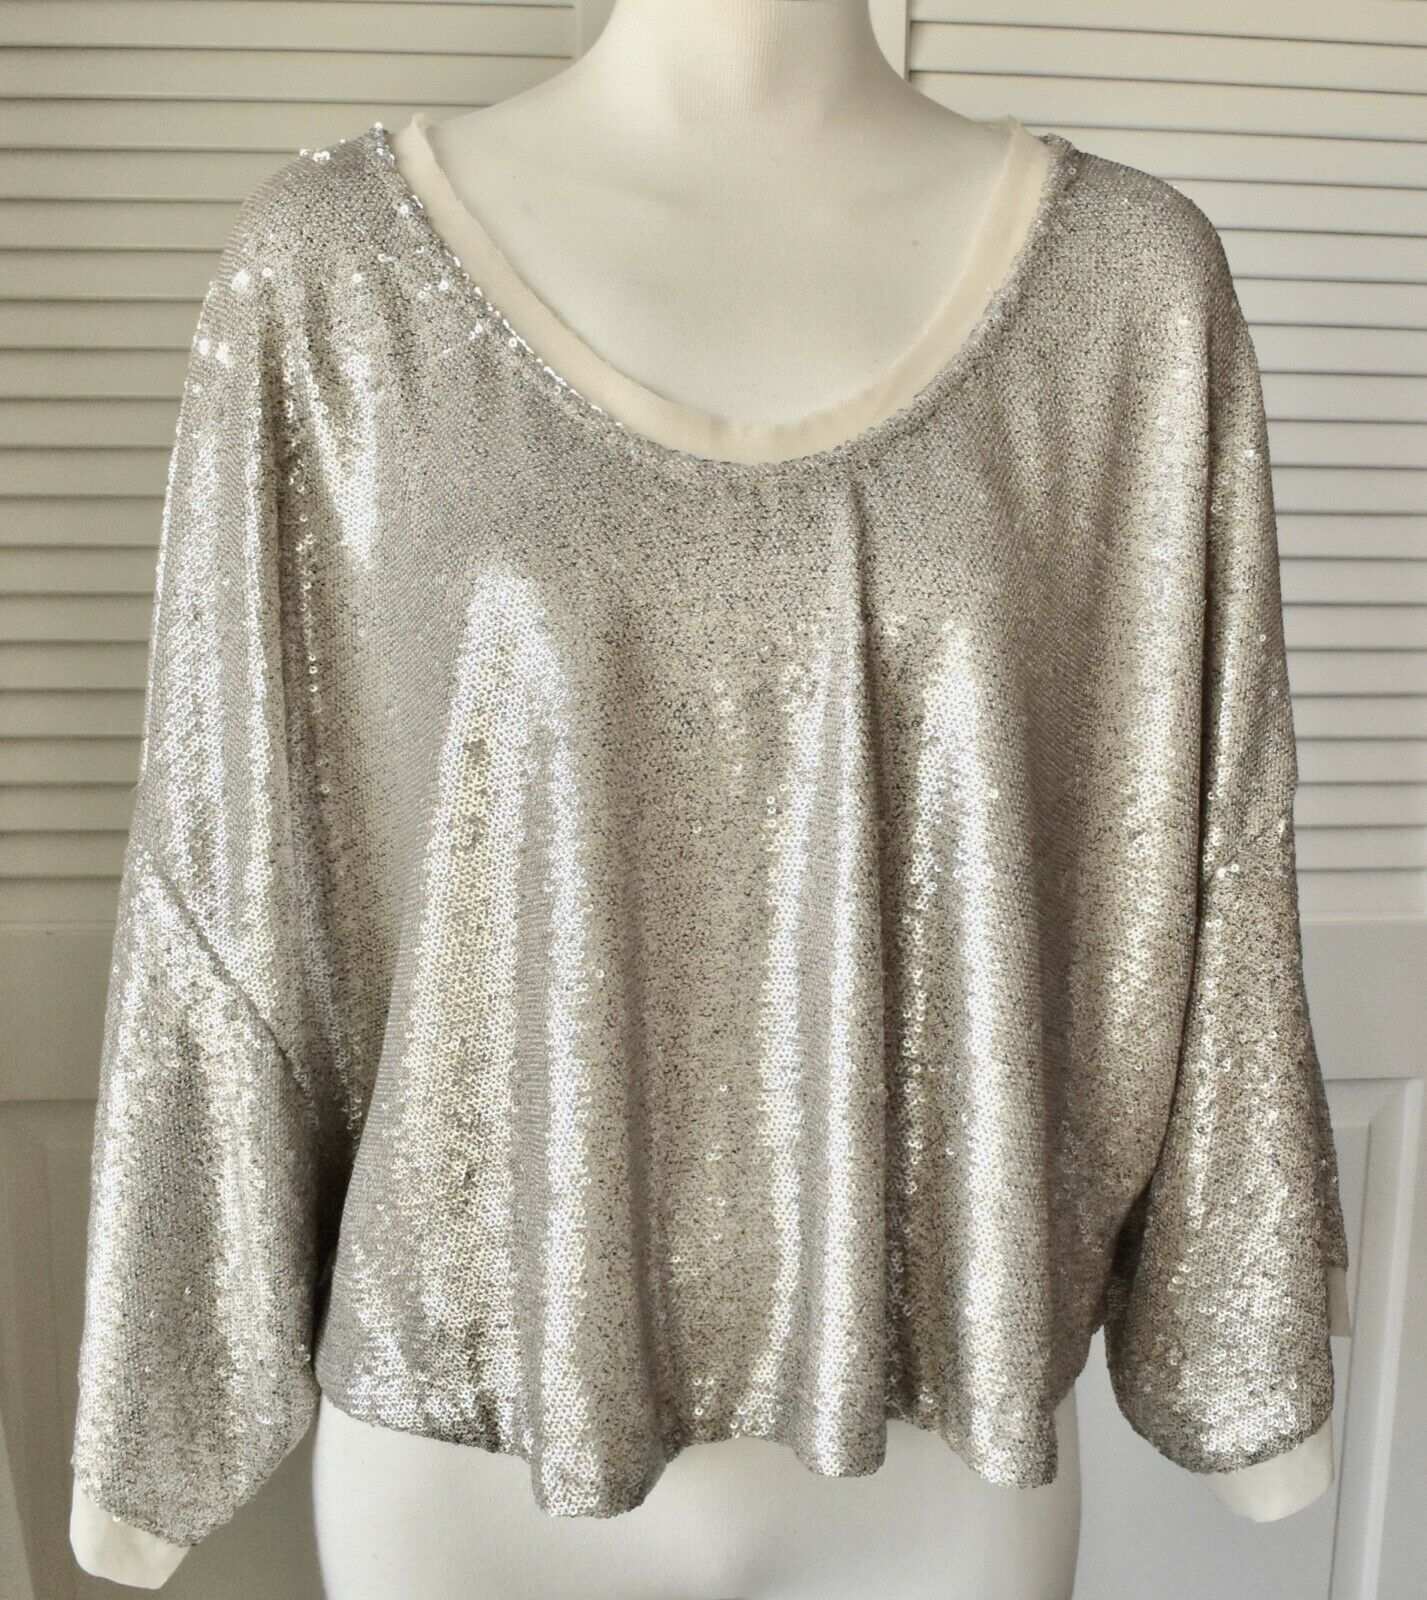 90642bab NWT Free People Champagne Dreams Gold Sequin 3 4 sleeve Crop Top Blouse Sz  Small